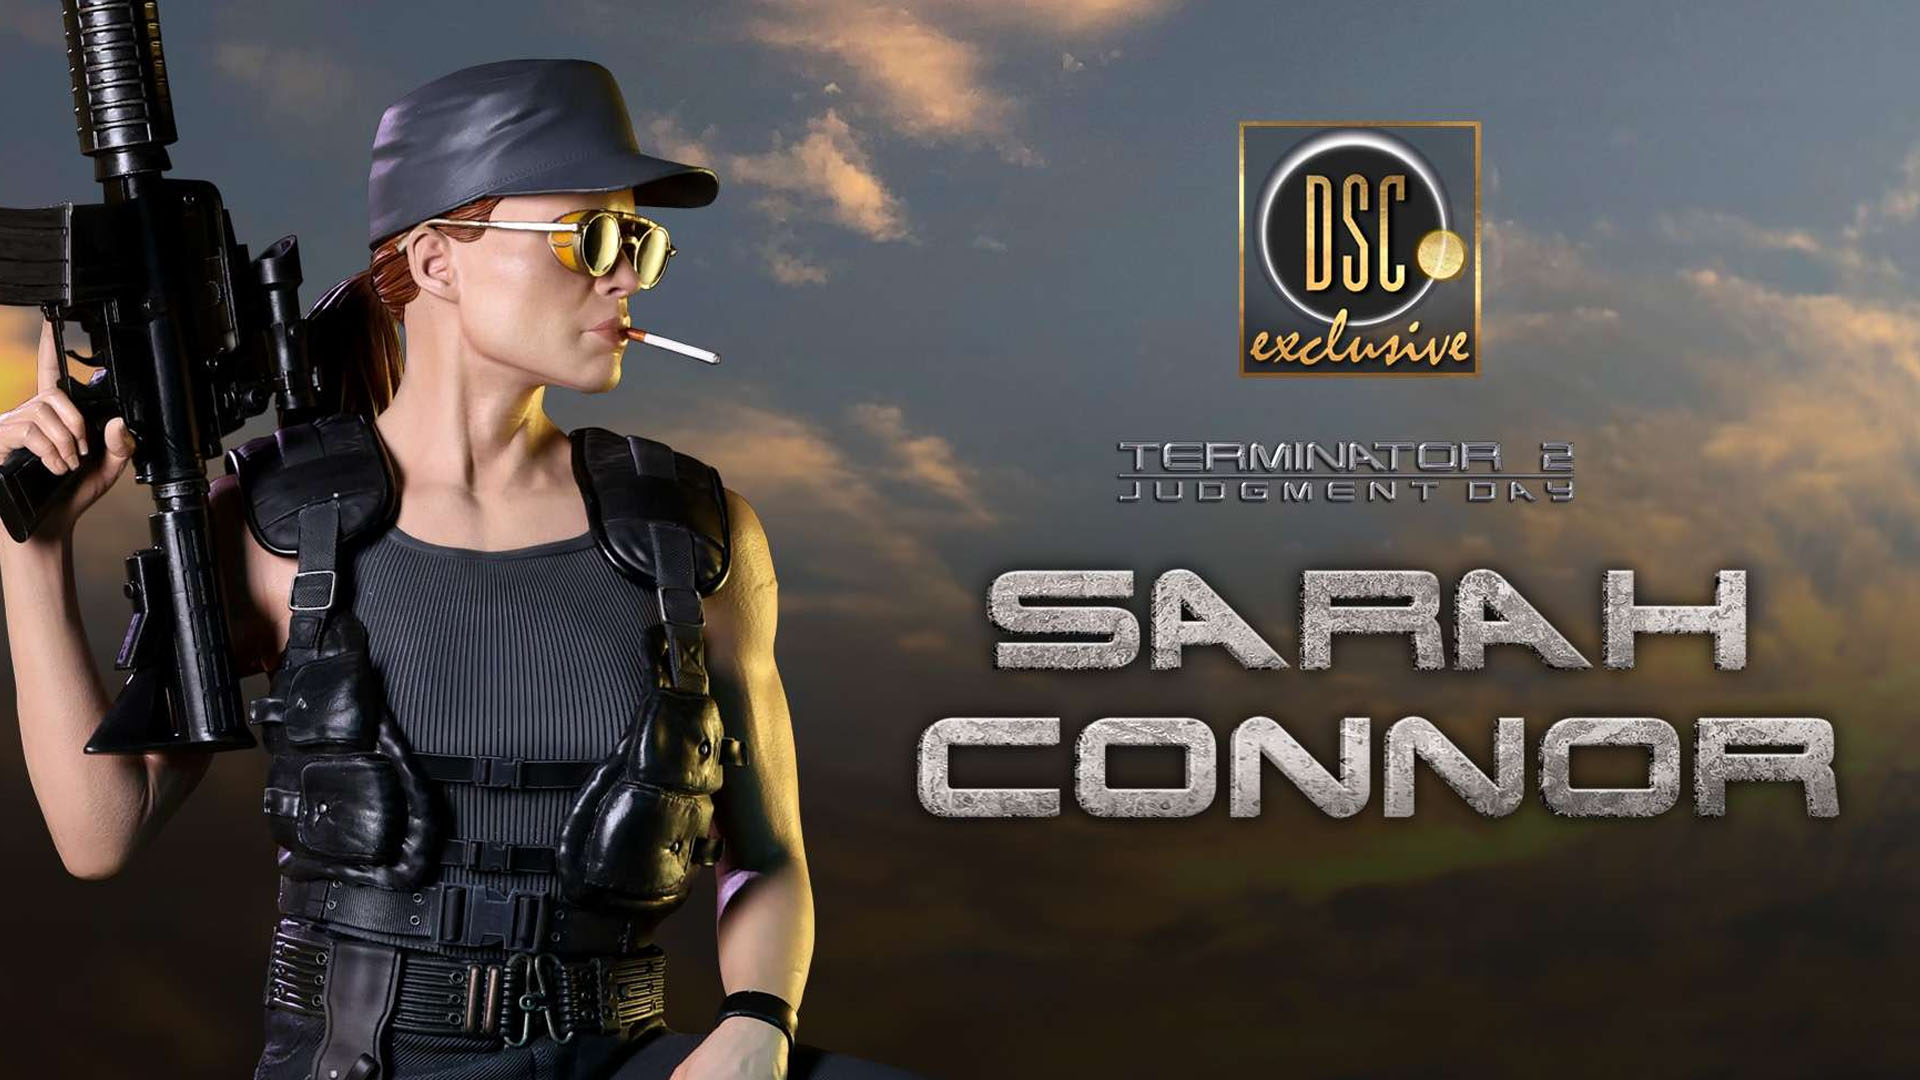 Sarah Connor Terminator 2 Judgment Day 30th Anniversary Exclusive Edition Premium 1/3 Scale Statue by Darkside Collectibles Studio